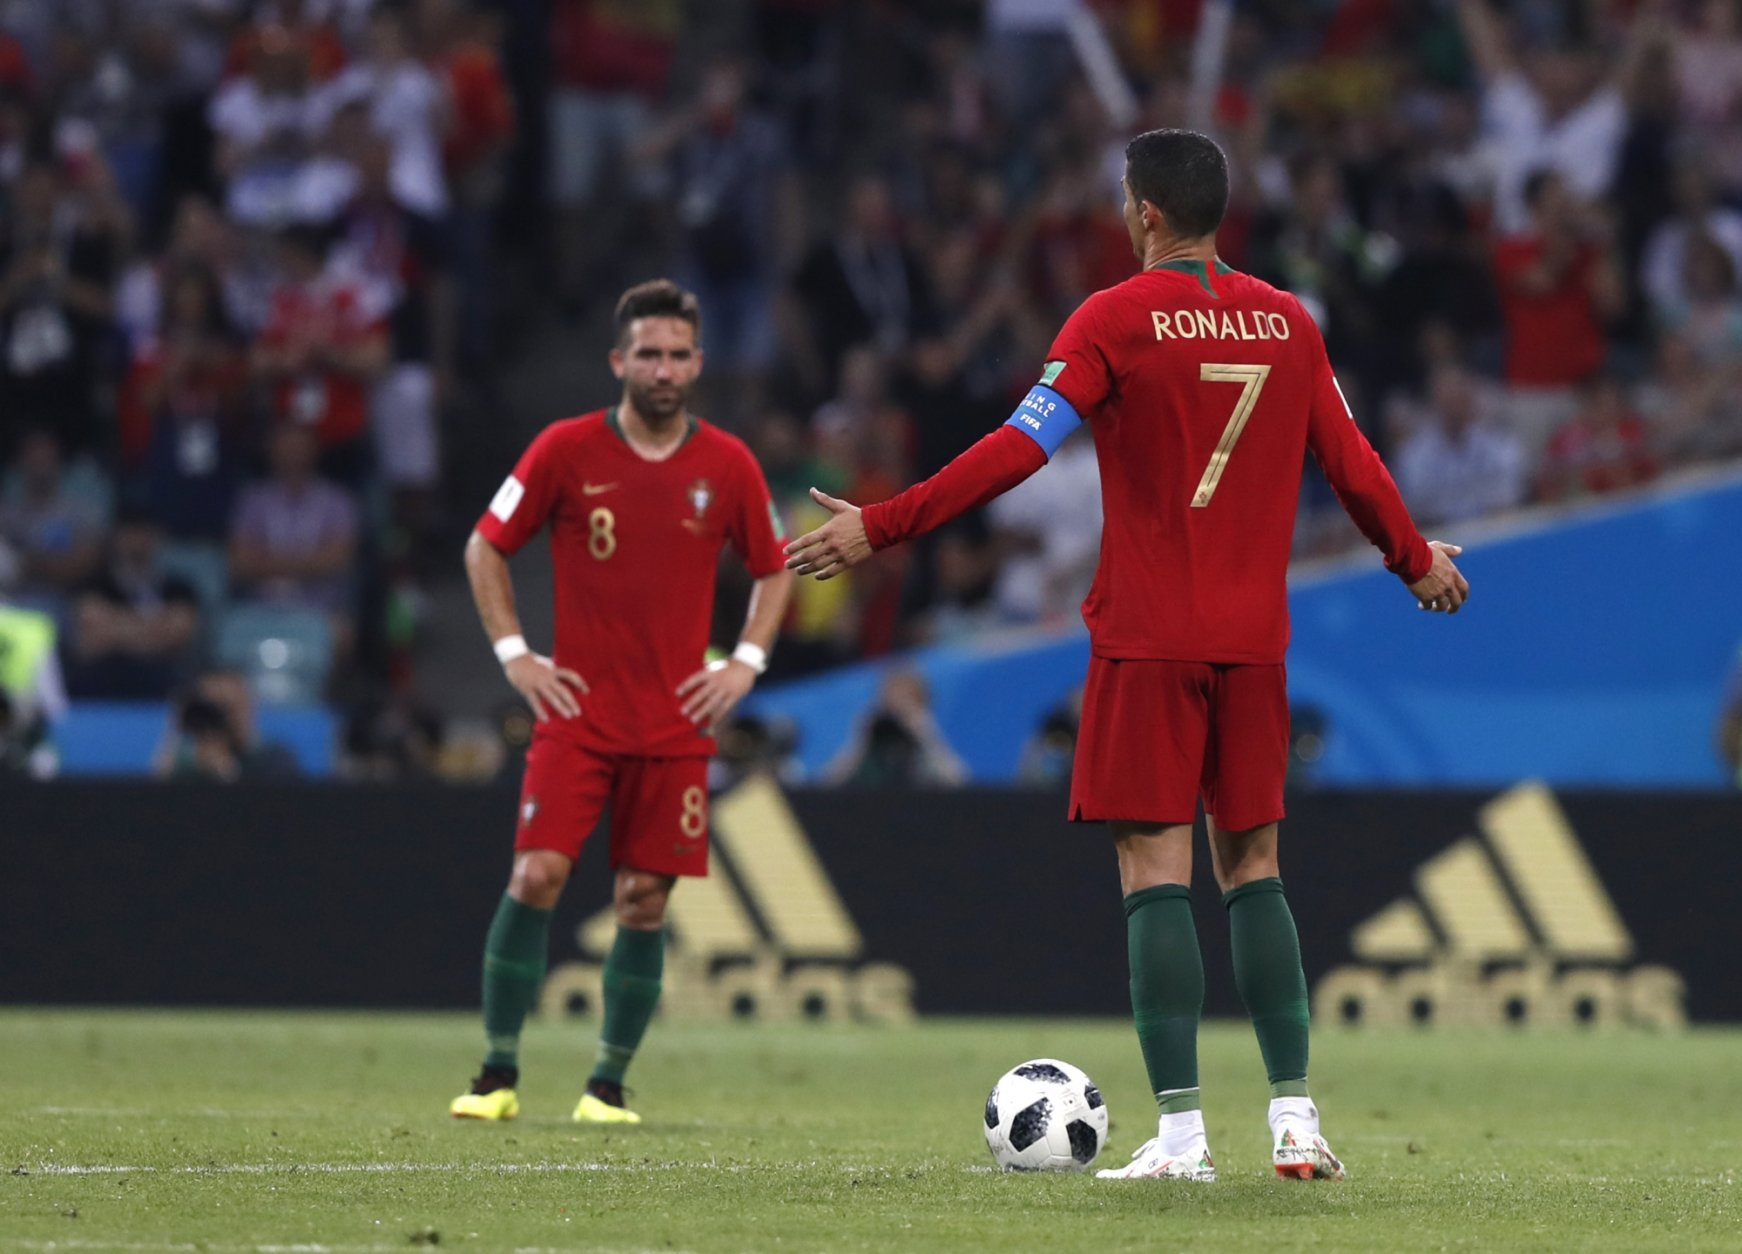 Portugal's Cristiano Ronaldo gestures to his teammates after Spain scored their 3rd goal during the group B match between Portugal and Spain at the 2018 soccer World Cup in the Fisht Stadium in Sochi, Russia, Friday, June 15, 2018. (AP Photo/Manu Fernandez)